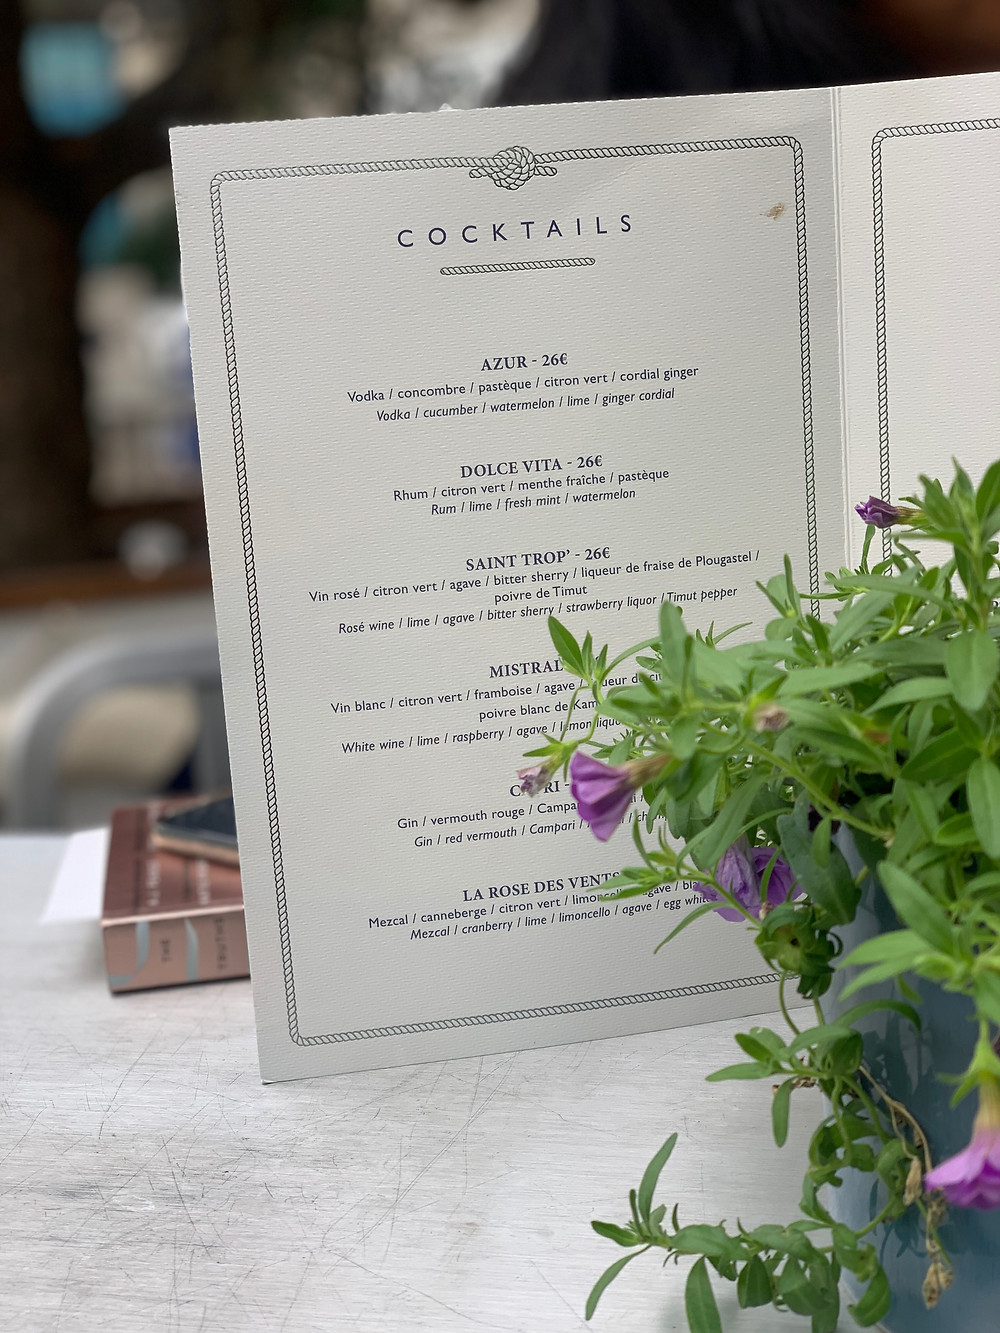 Cocktail menu at the peninsula hotel in france